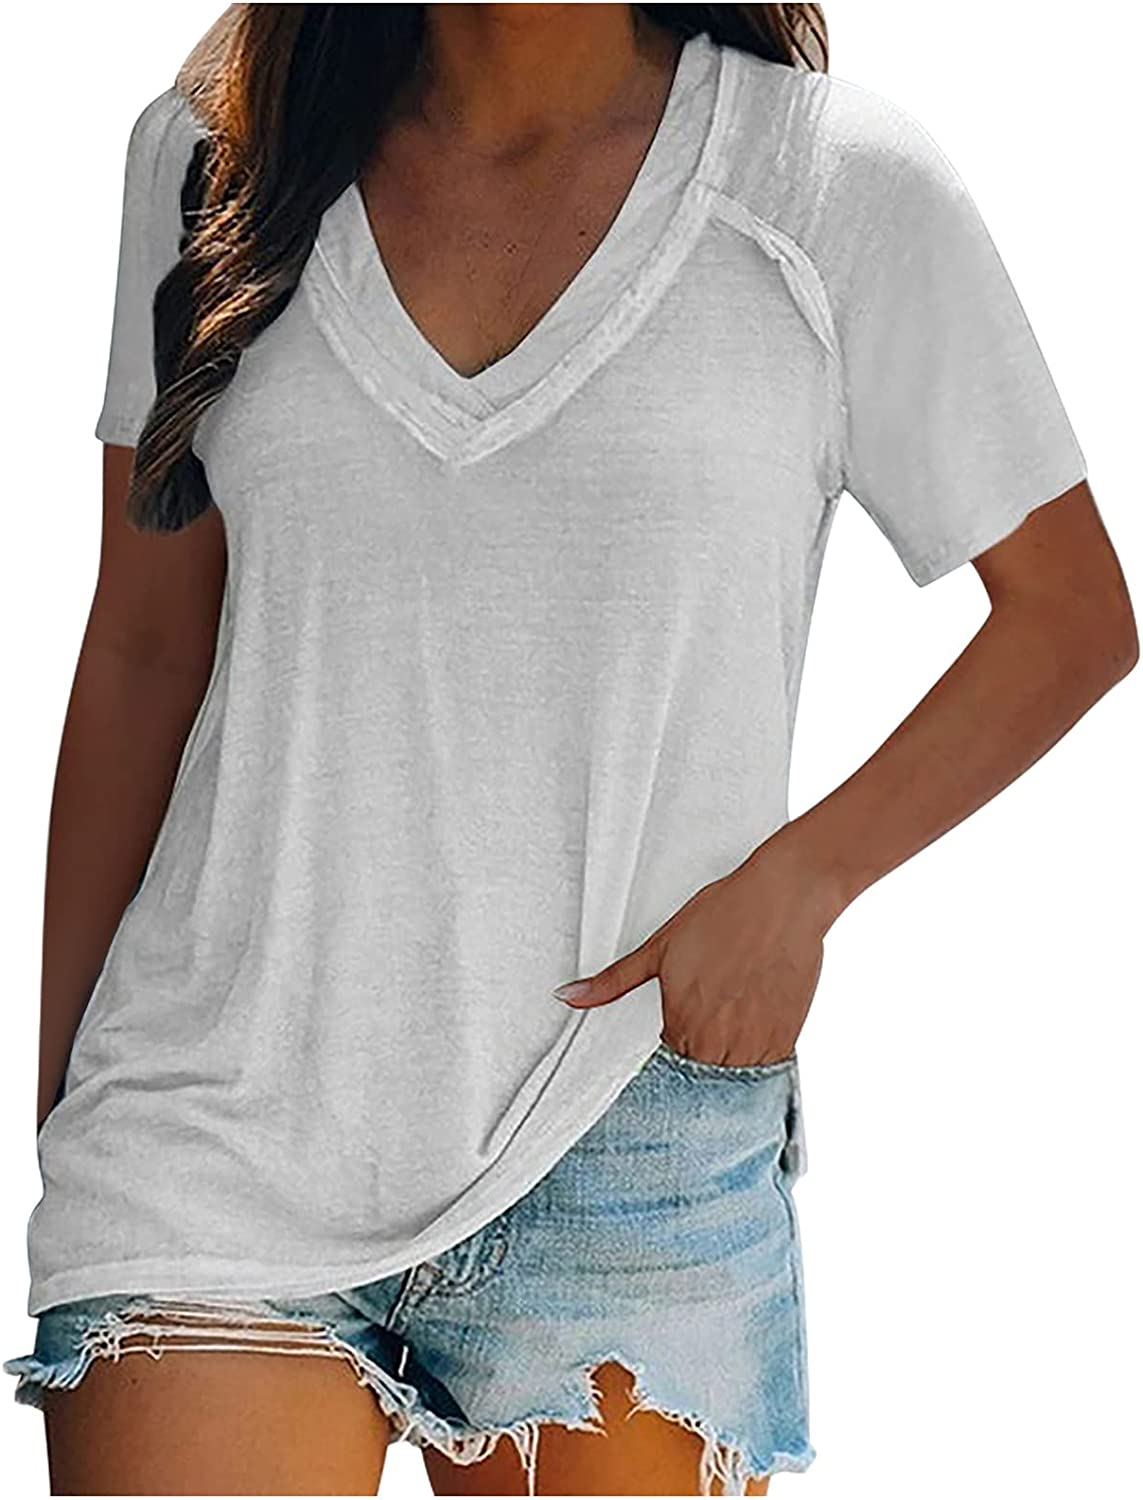 Plus Size Tops for Women Casual Summer Blouses Short Sleeve V Neck T Shirt Fashion Solid Color Tunic Tops Loose